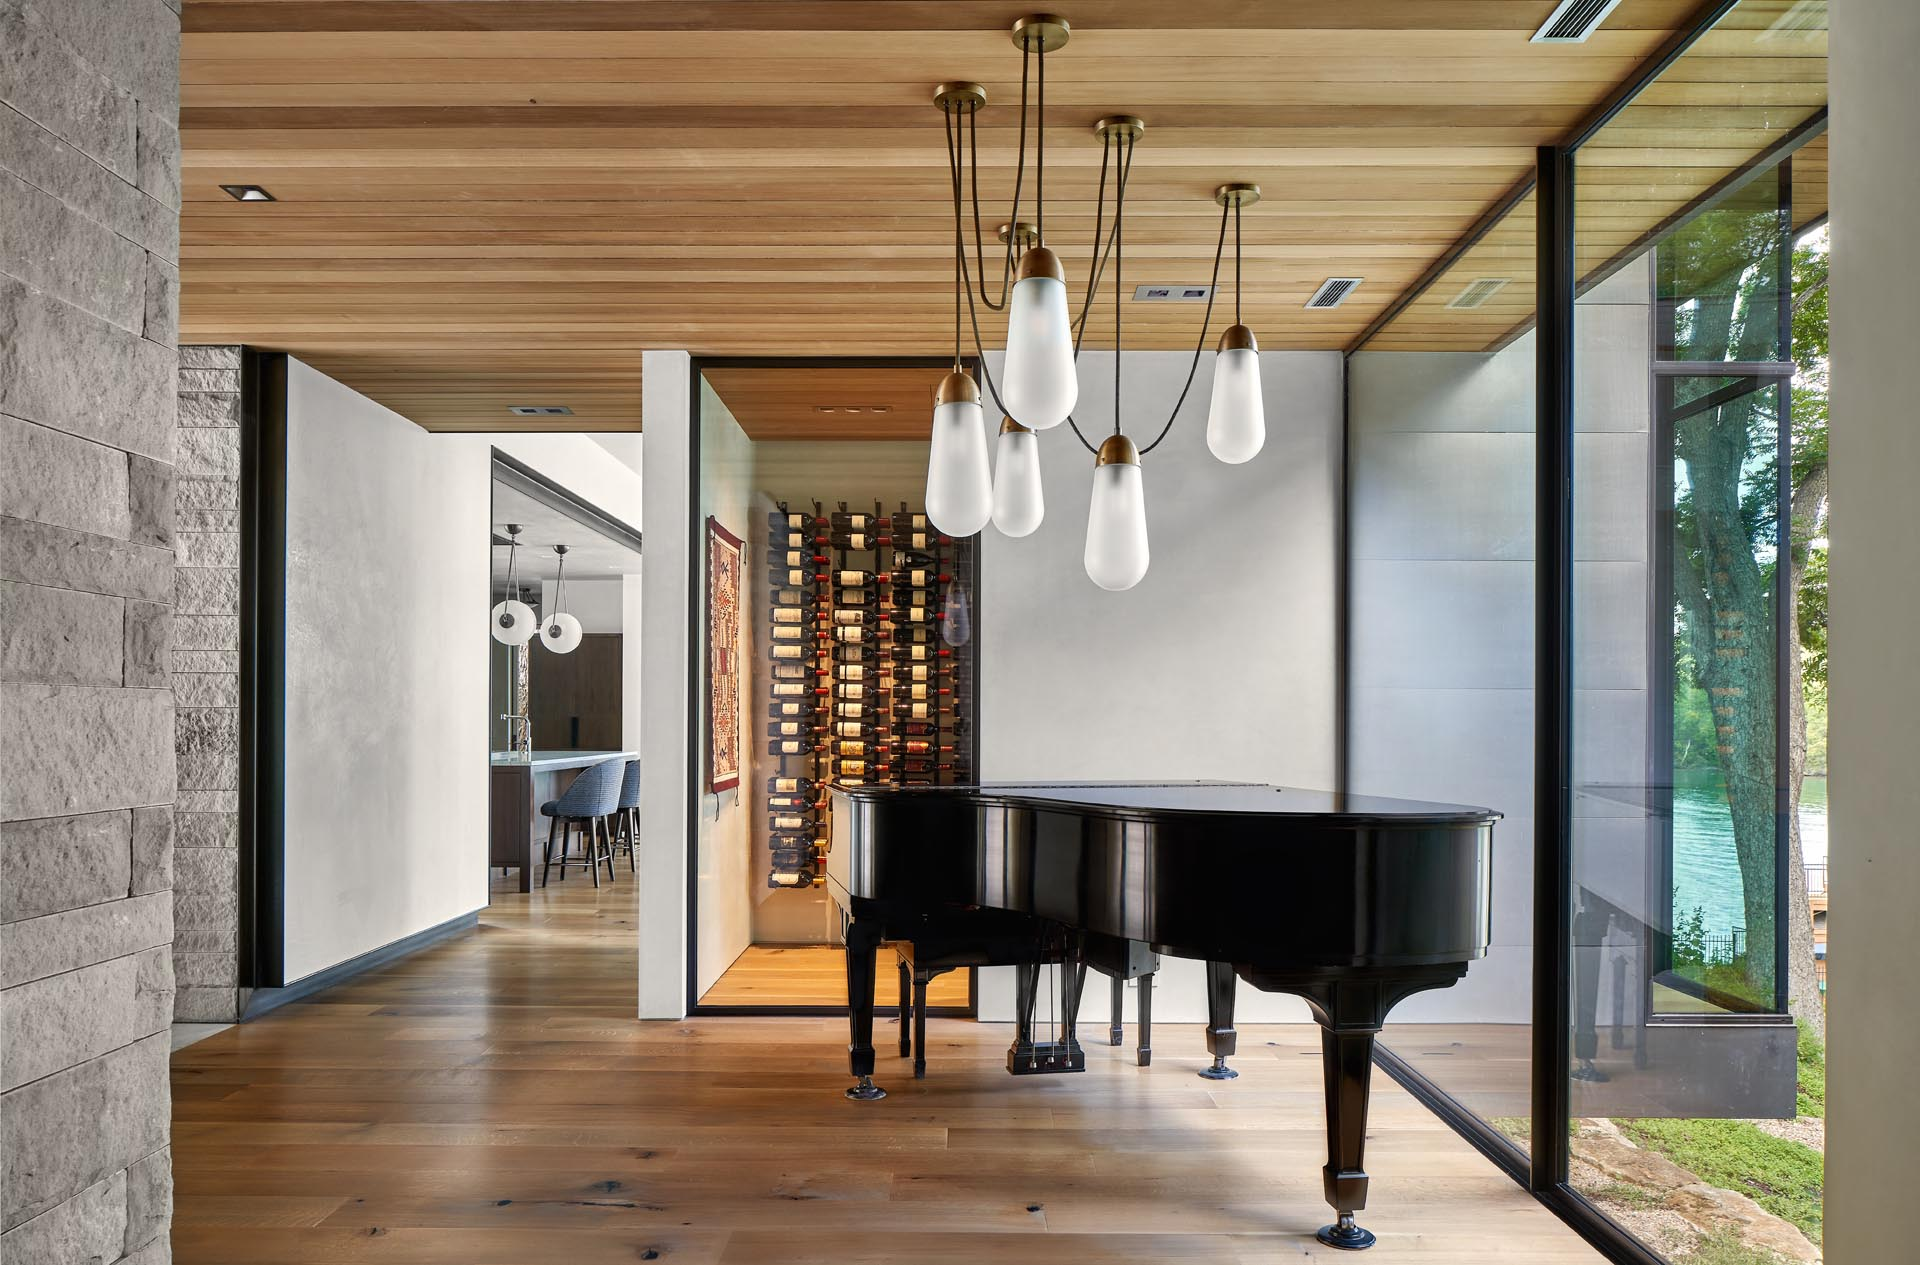 This modern home has a wine cellar and an entryway, which is furnished with a Steinway grand piano and custom Apparatus lighting.